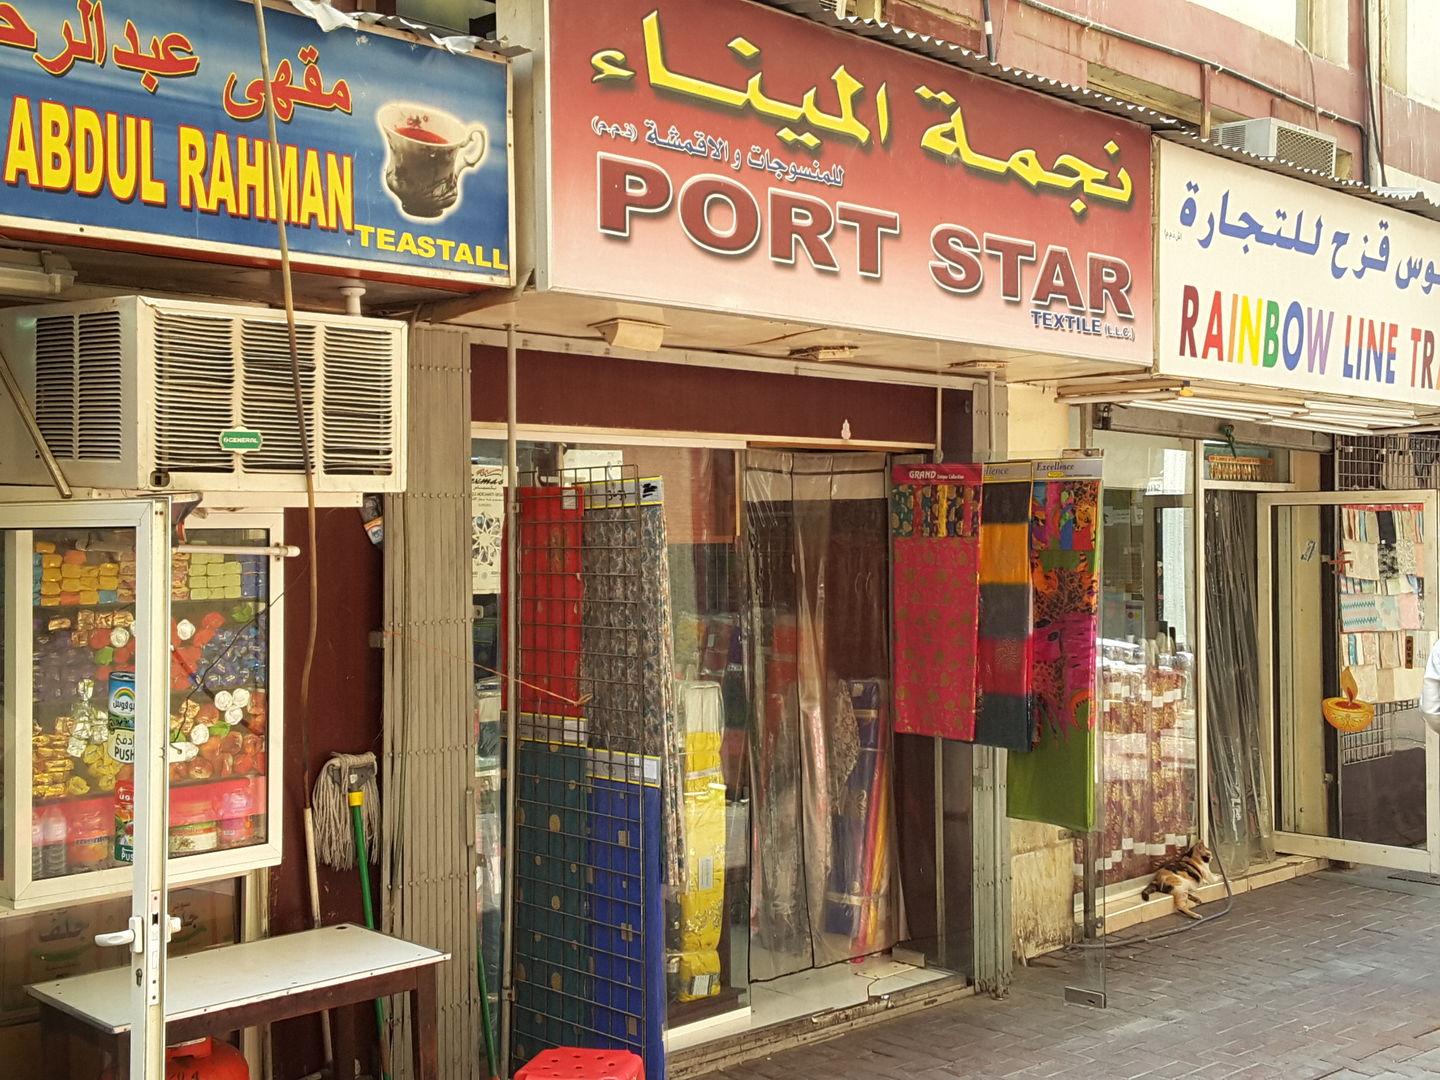 HiDubai-business-port-star-textile-b2b-services-distributors-wholesalers-meena-bazar-al-souq-al-kabeer-dubai-2